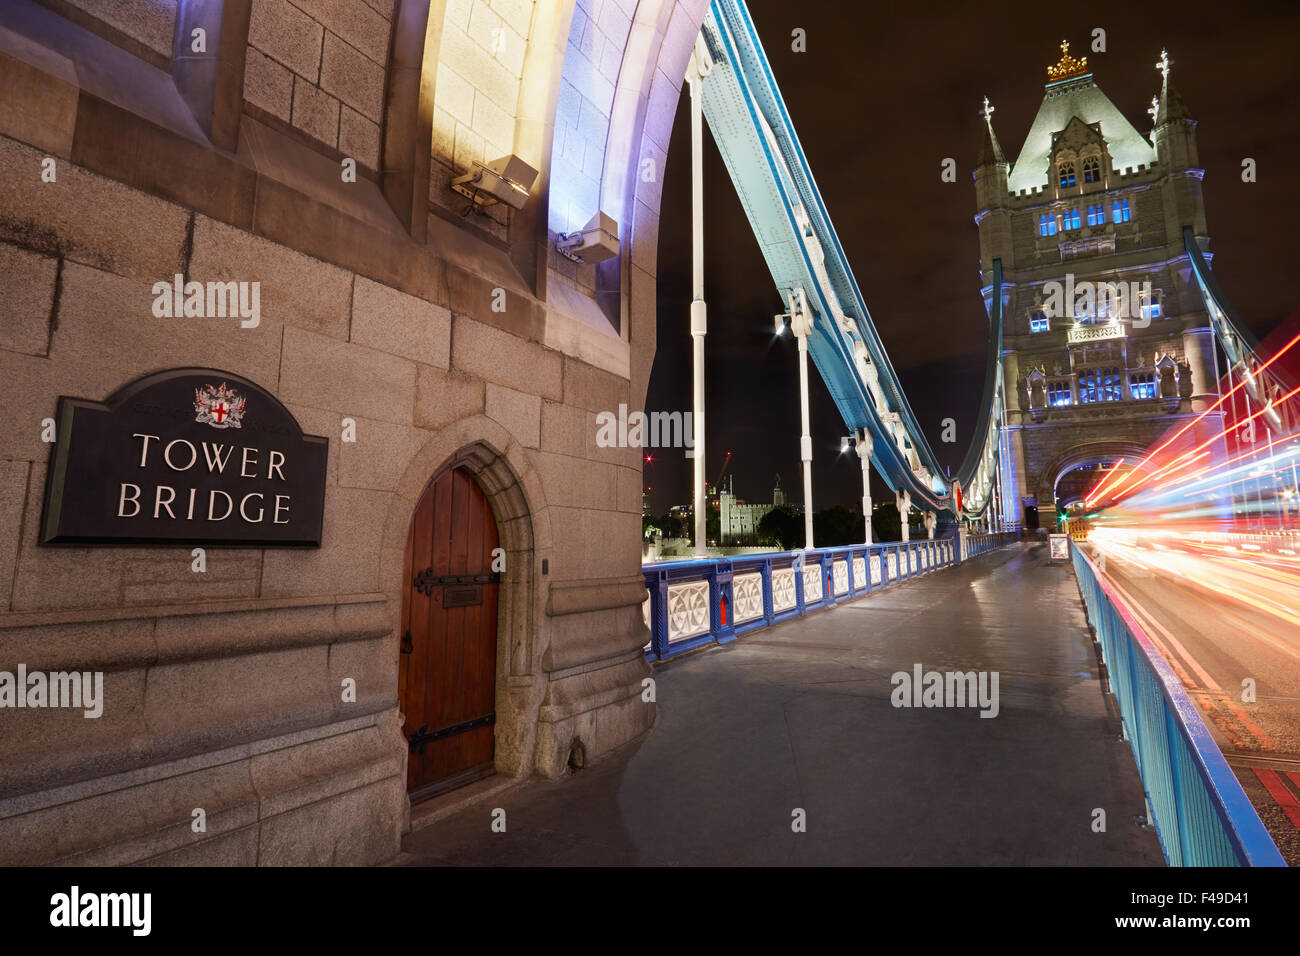 Tower bridge in London illuminated at night with car passing lights - Stock Image